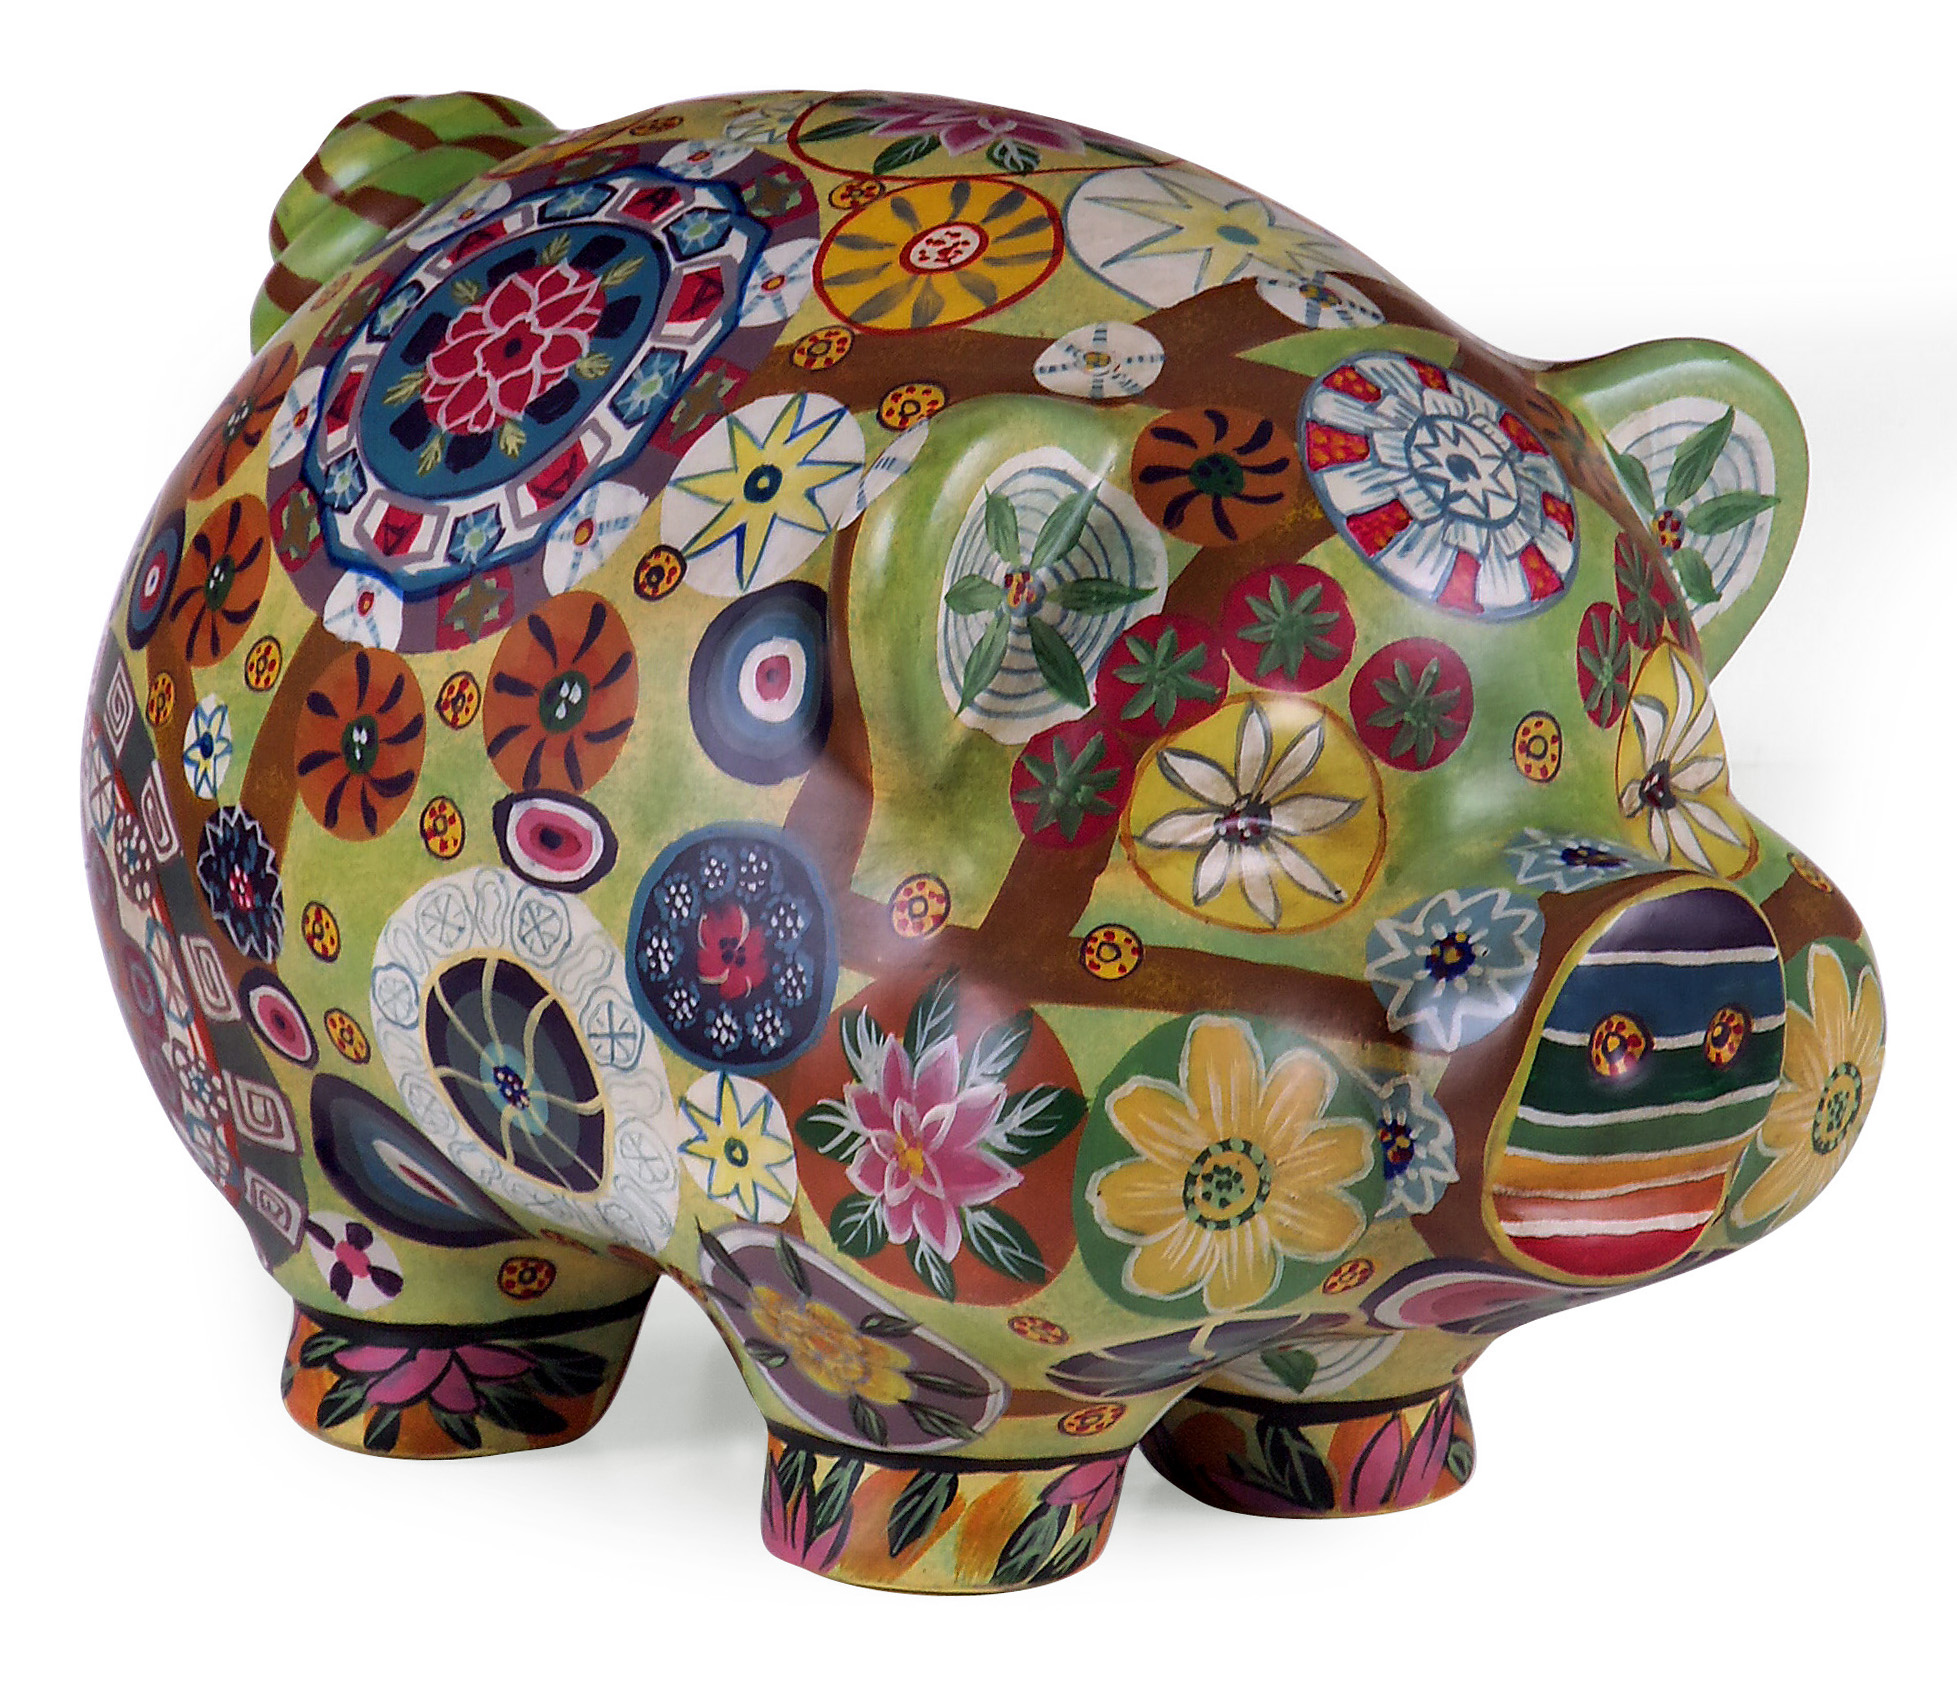 Piggy Bank Adult 5 Gifts Almost As Good As Cash And Way More Thoughtful